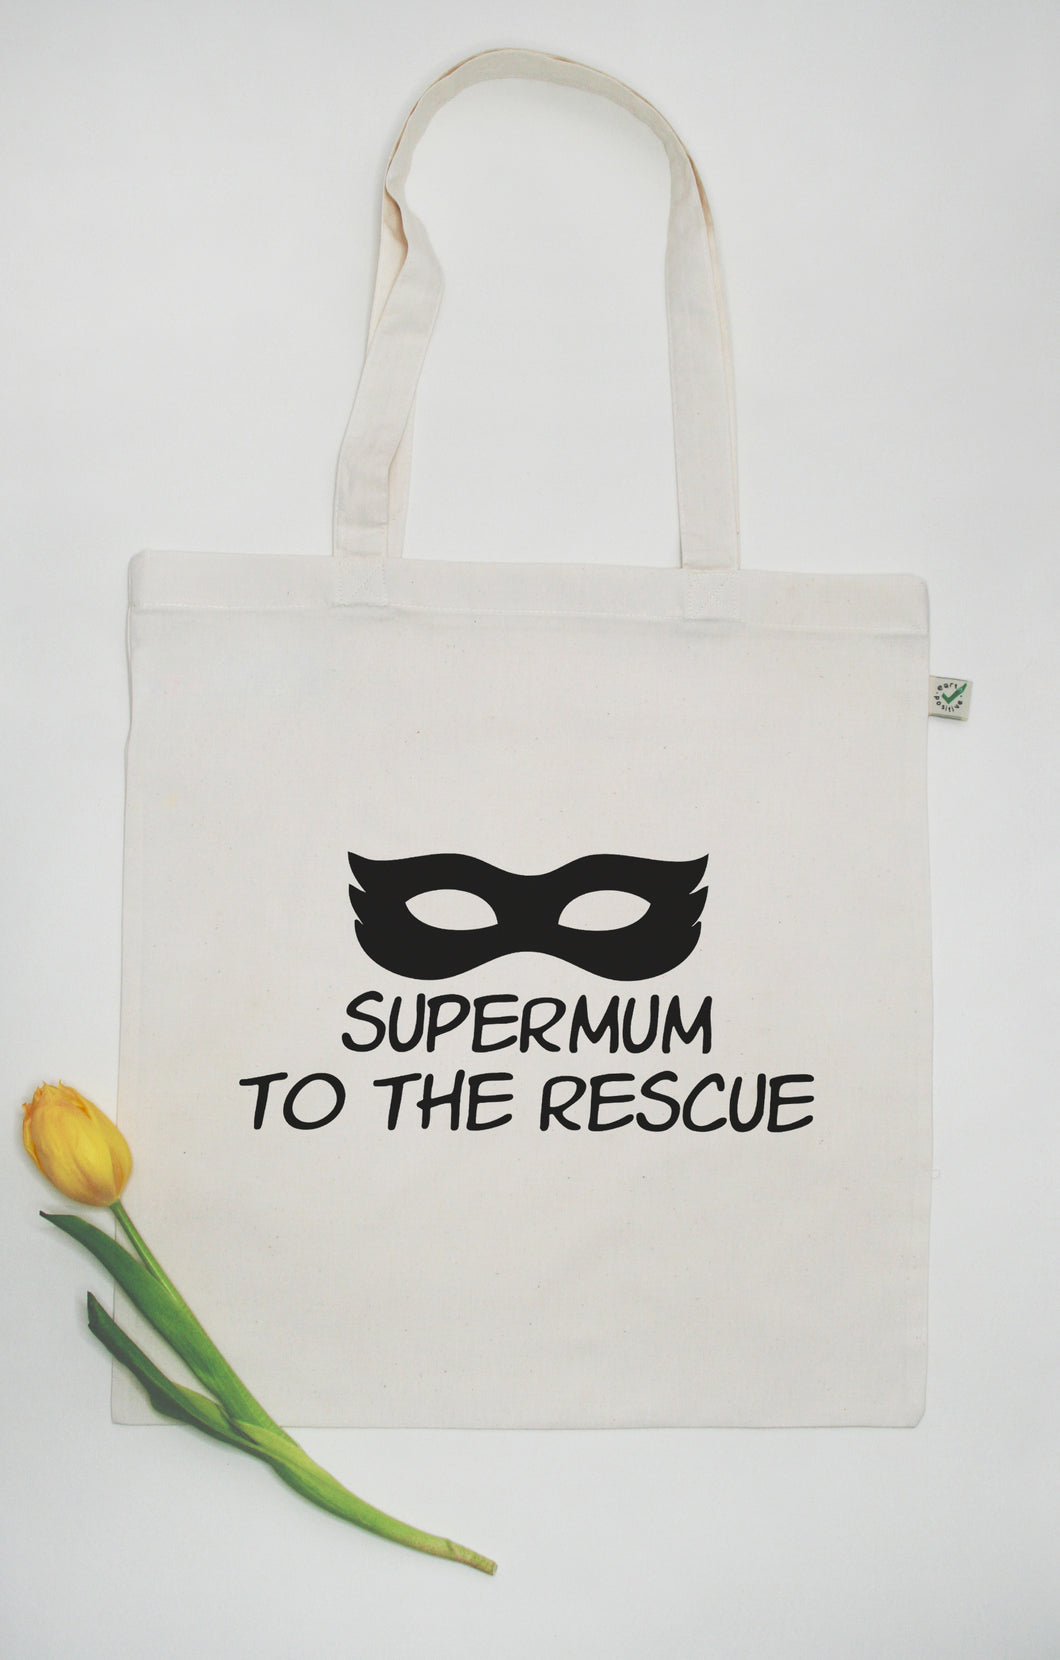 Supermum to the rescue - 100% Organic and Fairtrade Cotton Tote Bag